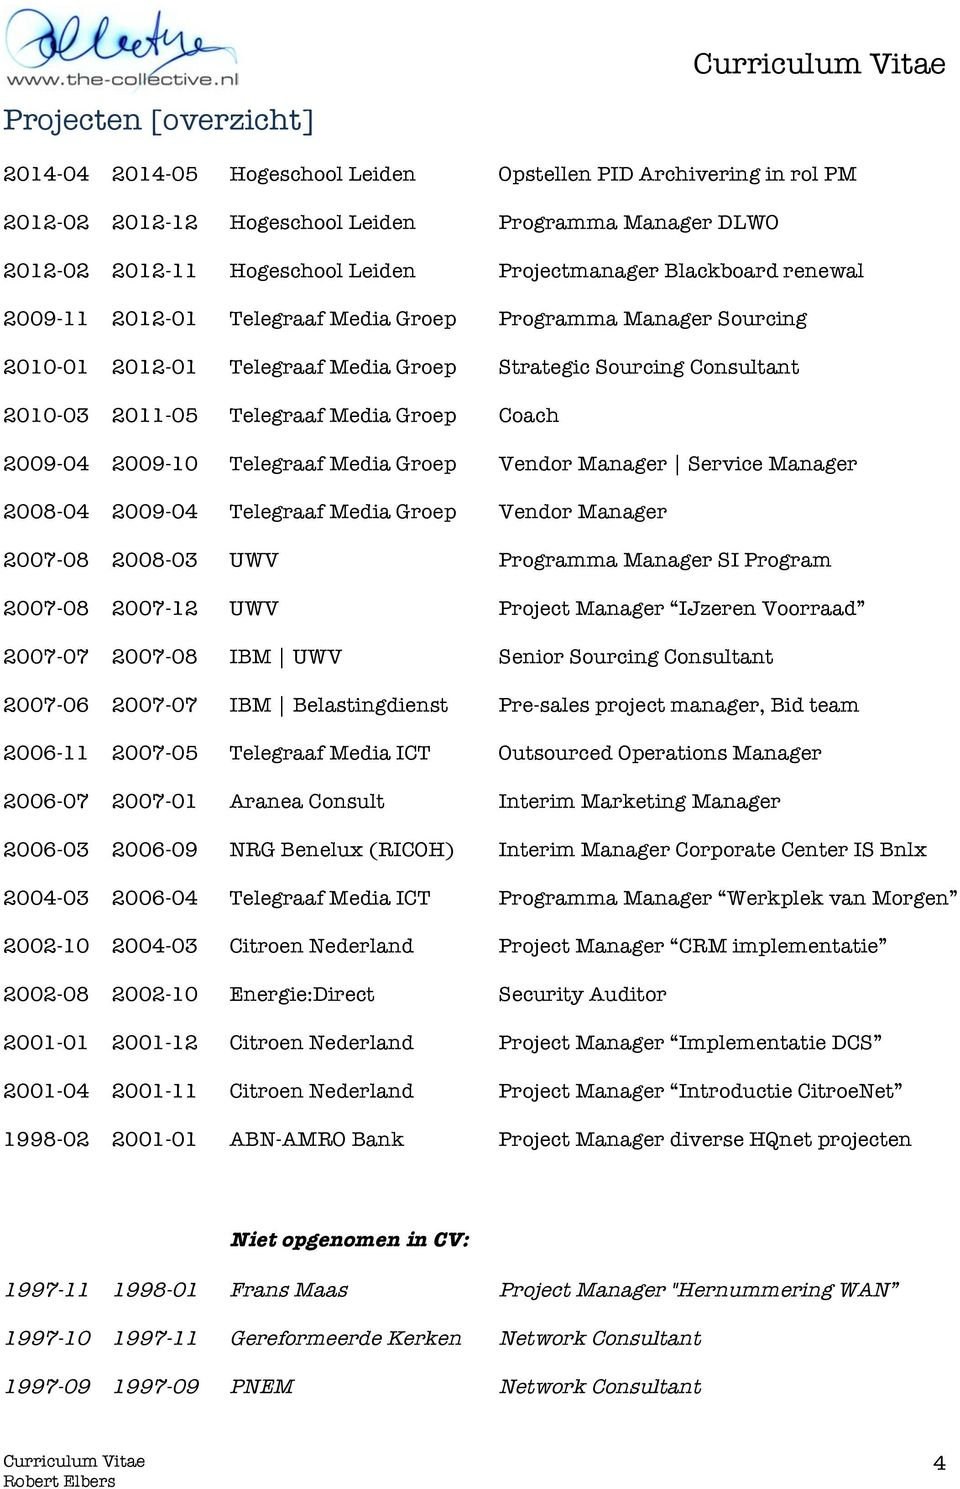 2009-04 2009-10 Telegraaf Media Groep Vendor Manager Service Manager 2008-04 2009-04 Telegraaf Media Groep Vendor Manager 2007-08 2008-03 UWV Programma Manager SI Program 2007-08 2007-12 UWV Project